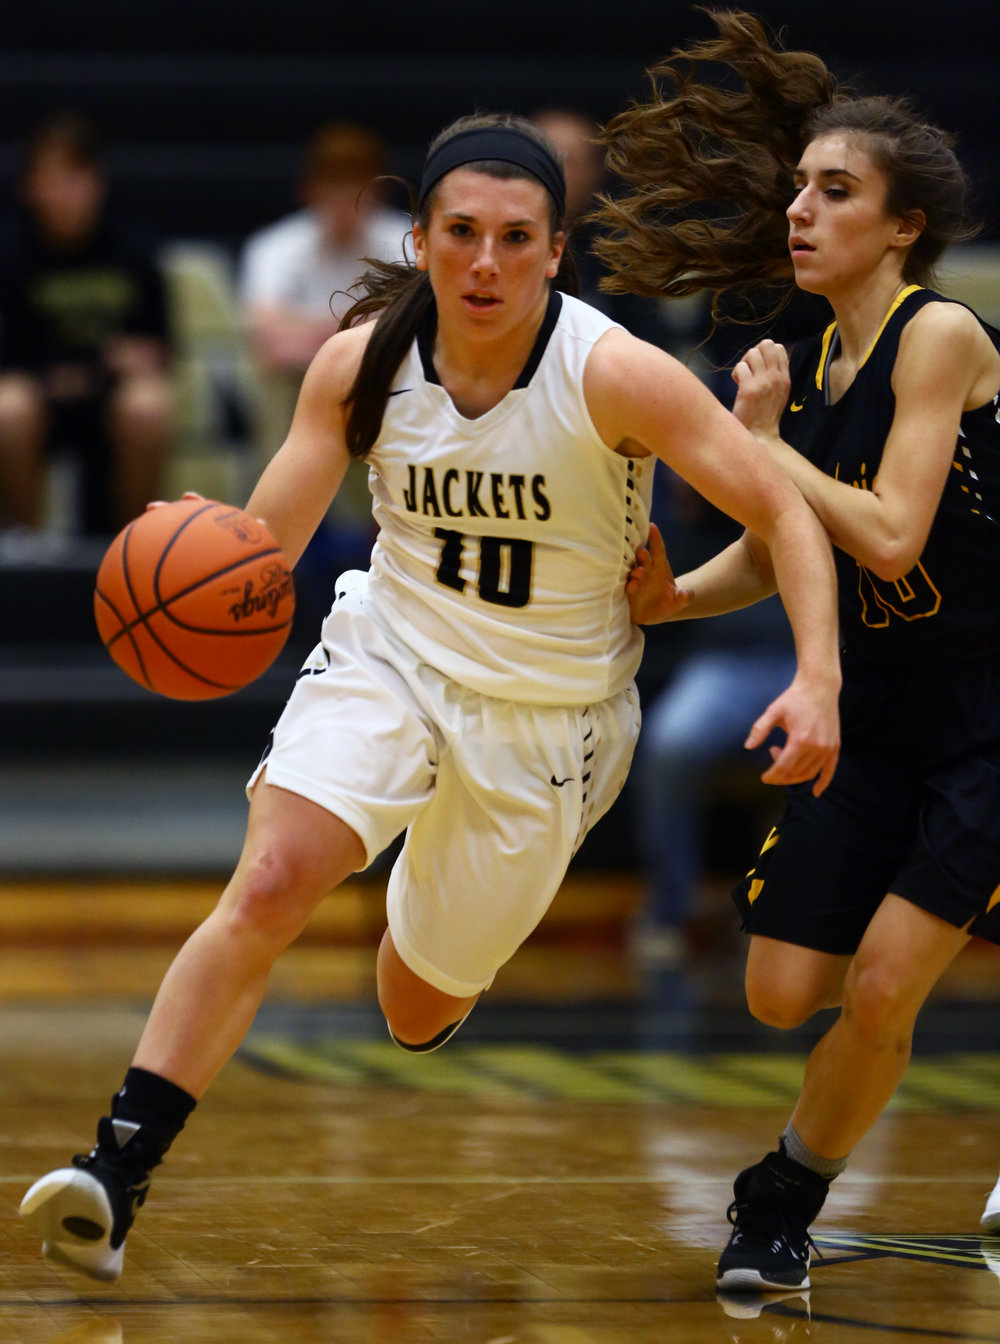 Perrysburg High School guard Kristina DeMarco (10) dribbles the ball down court around Sylvania Northview High School guard Kylie Archibeque during the girl's varsity basketball game at Perrysburg High School on Thursday, Dec. 8, 2016.